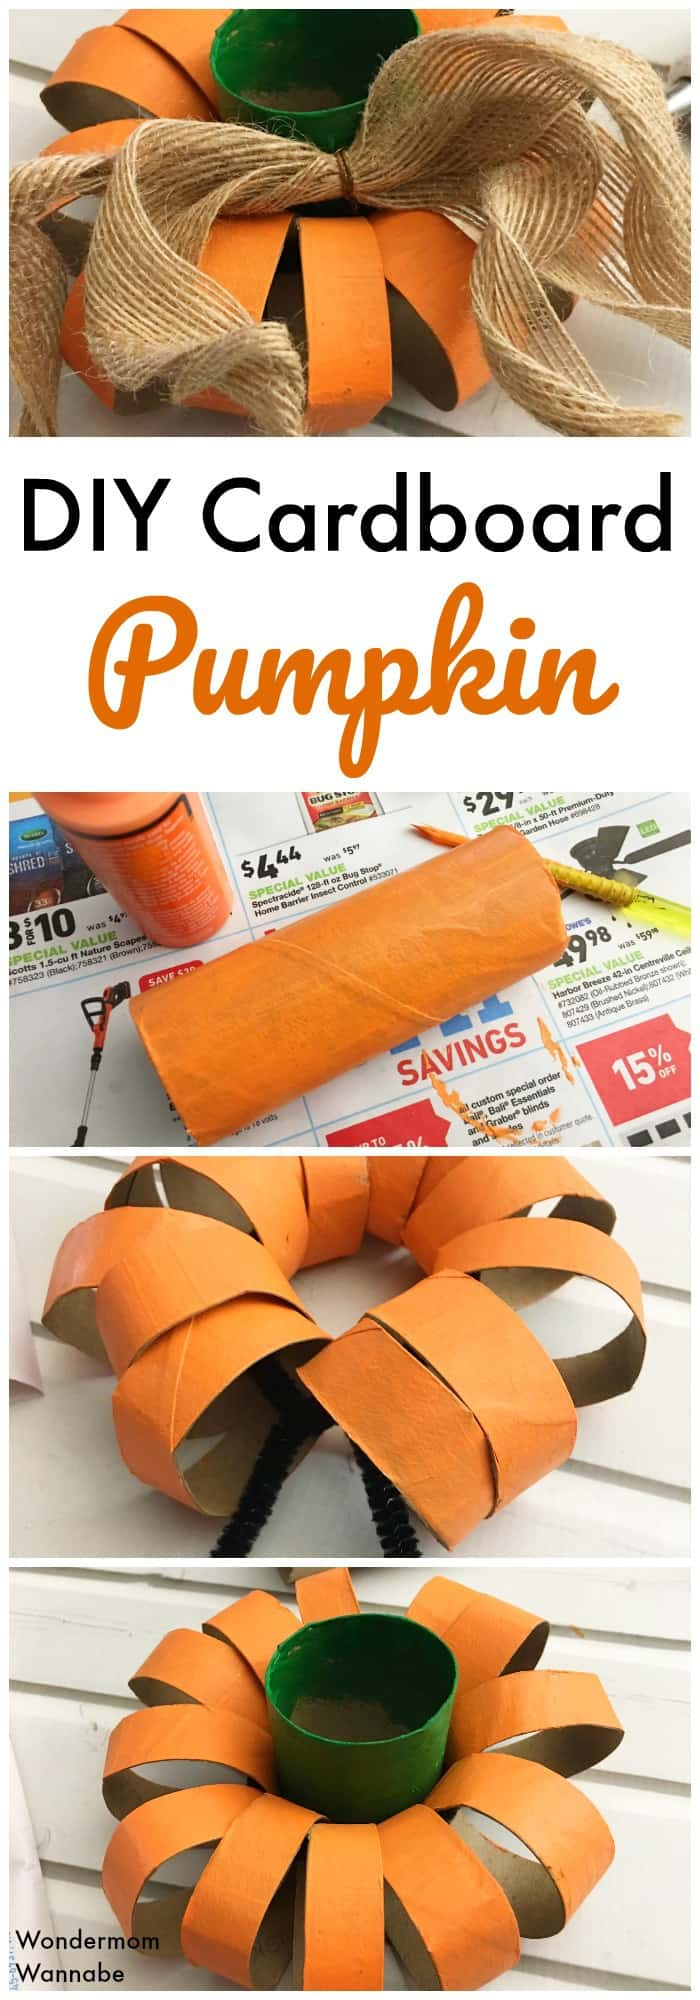 Save money on Hallween decorations by making your own. This DIY toilet paper roll pumpkin is easy to make and can be recycled later.